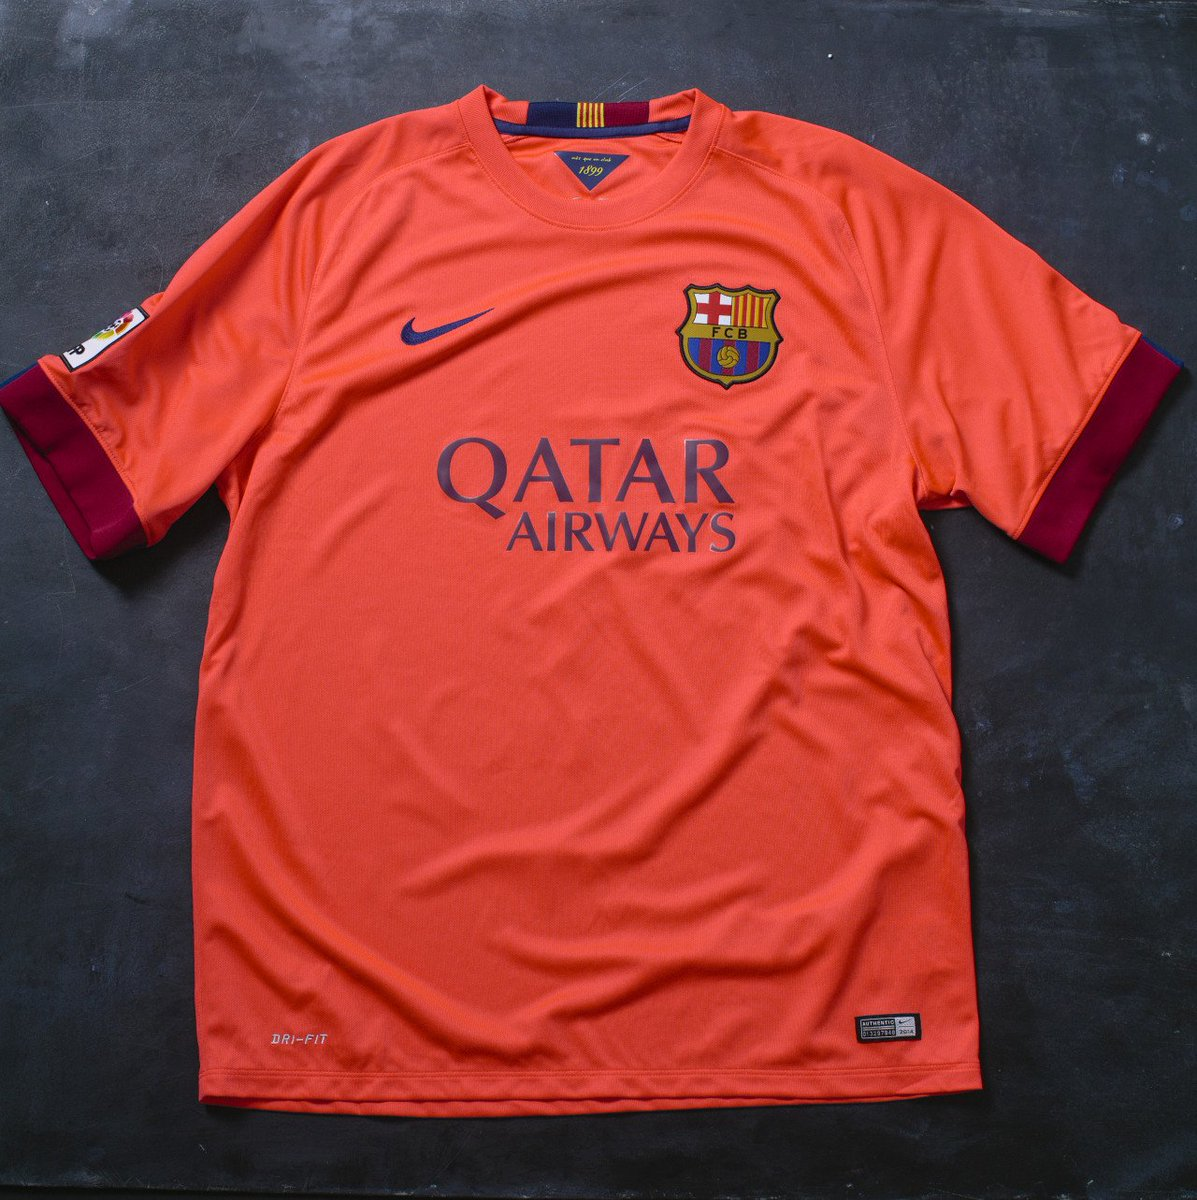 World Soccer Shop On Twitter Worldsoccershop S Barcelona X Nike Vault Collection From 2013 2018 1 St Jersey The 2013 15 Barcelona Away Jersey The 1st Yr That Qatar Airways Was The Jersey Sponsor 2